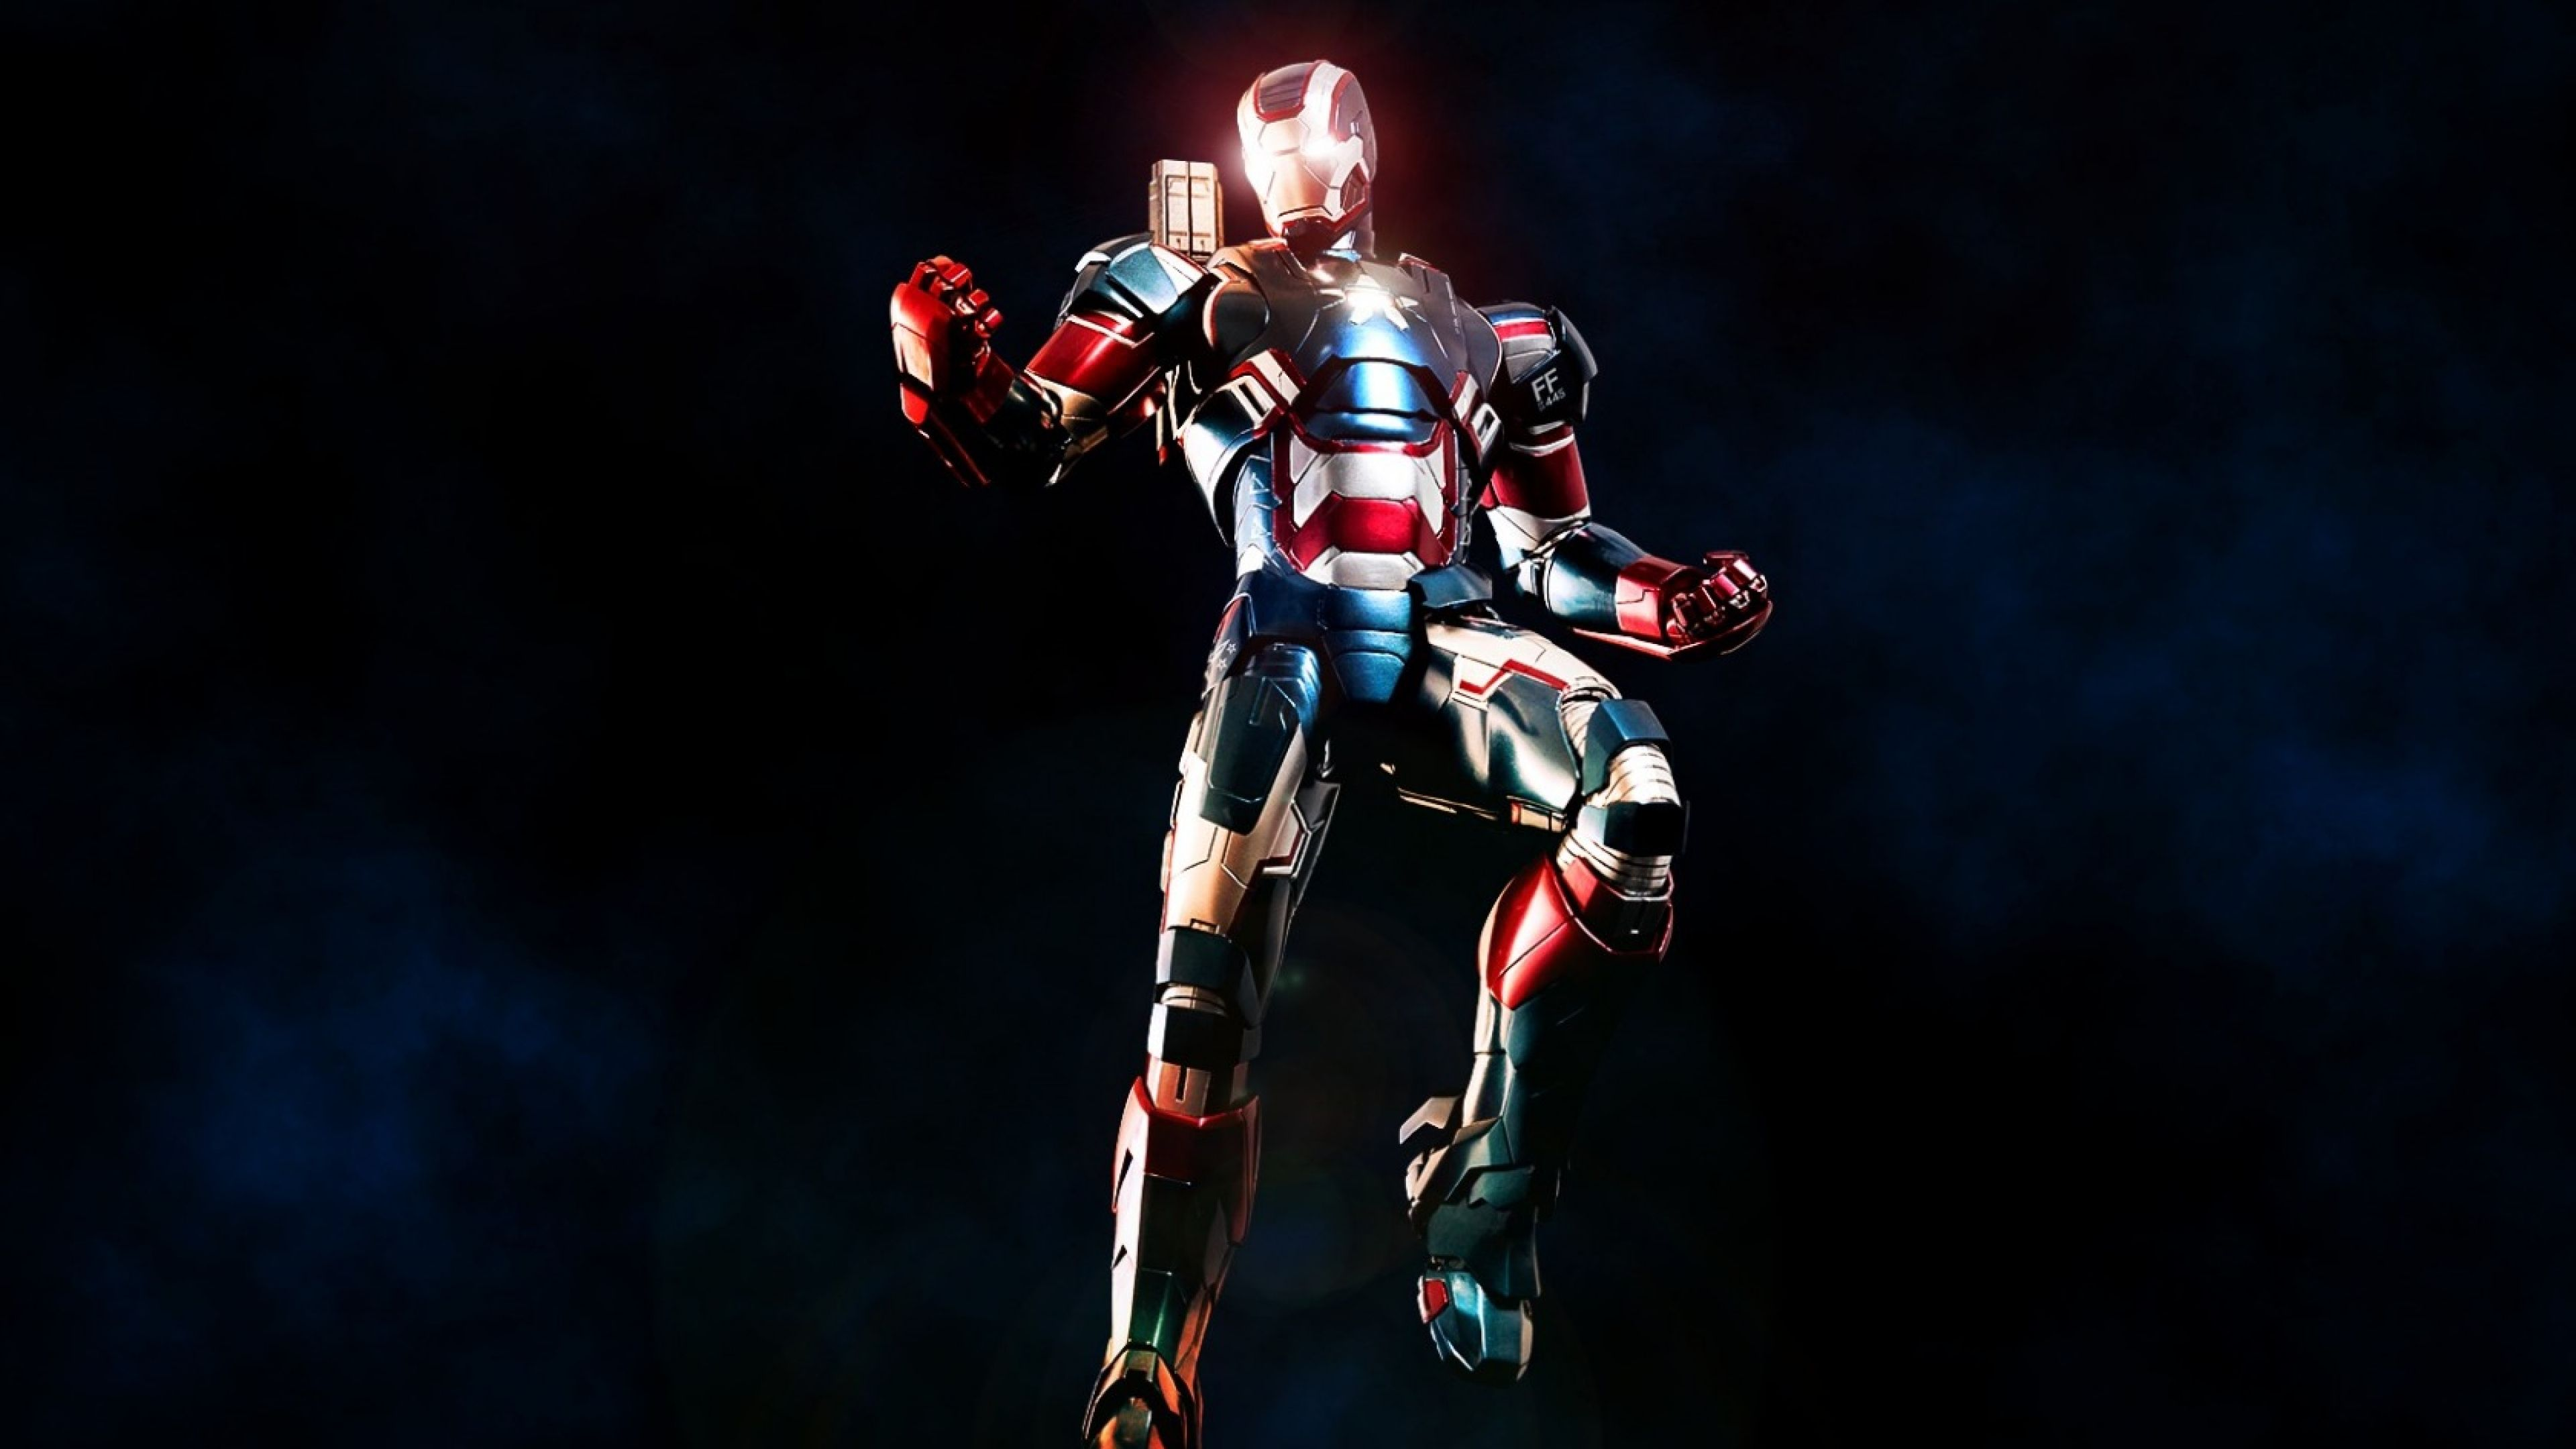 4k ultra hd iron man wallpapers hd desktop backgrounds - Iron man wallpaper anime ...